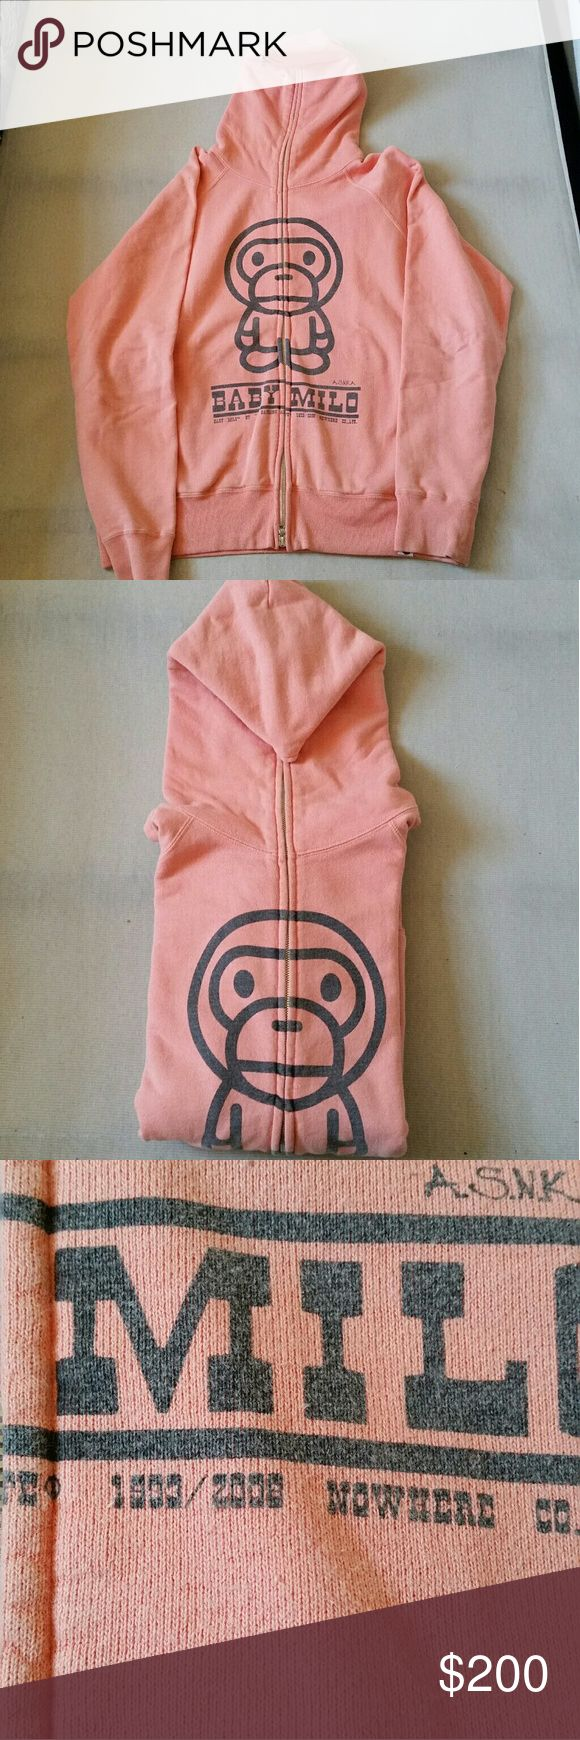 Bape rare 2008 vintage zip up hoodie This is from 2008 so the condition is not the best, but it is very rare. This is 100% authentic. Supreme Sweaters Zip Up